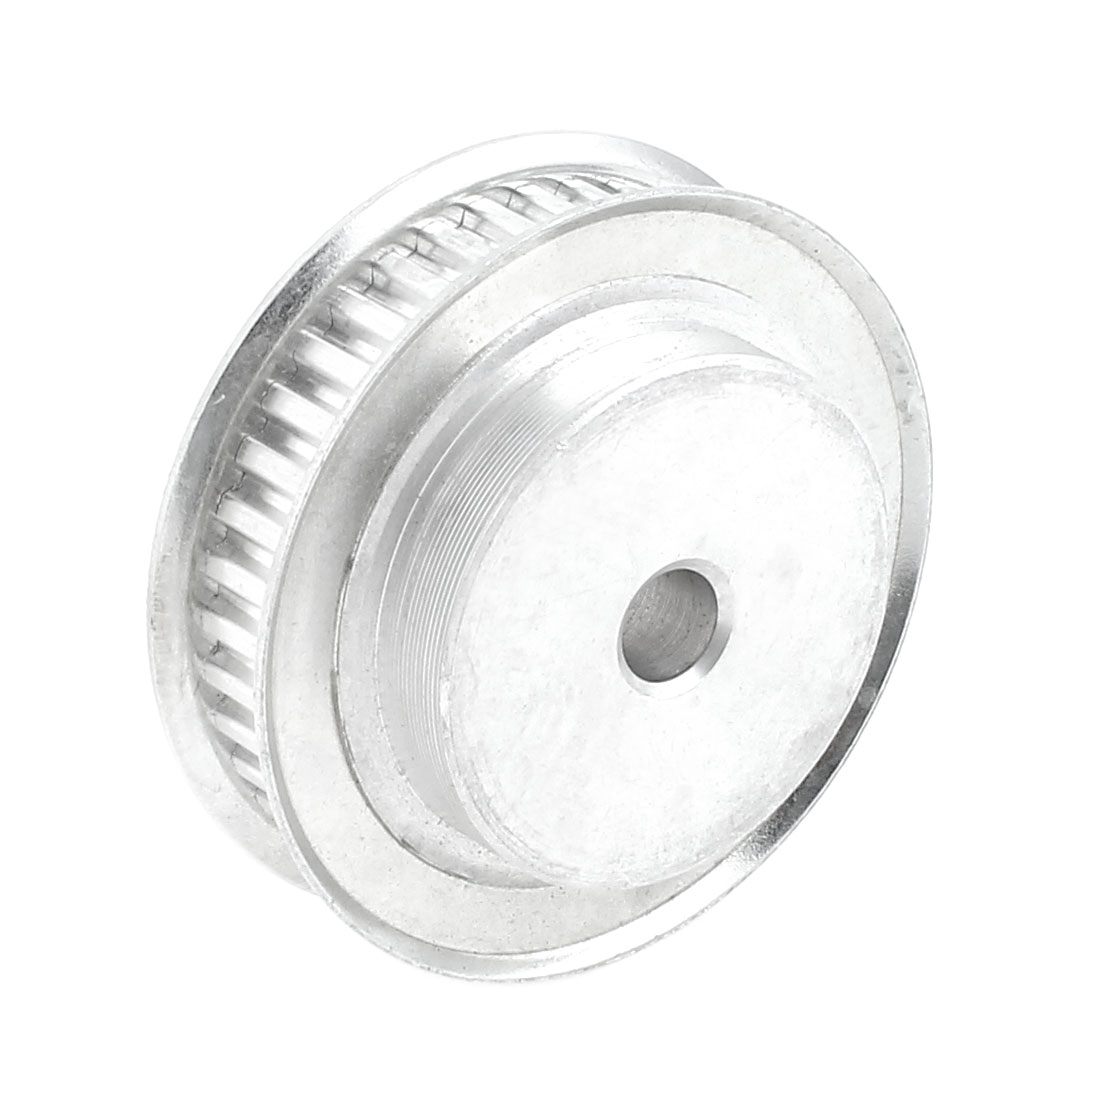 XL40 40 Teeth 10mm Pilot Bore 5.08mm Pitch Aluminum Alloy Groove Timing Pulley for 11mm Width Belt